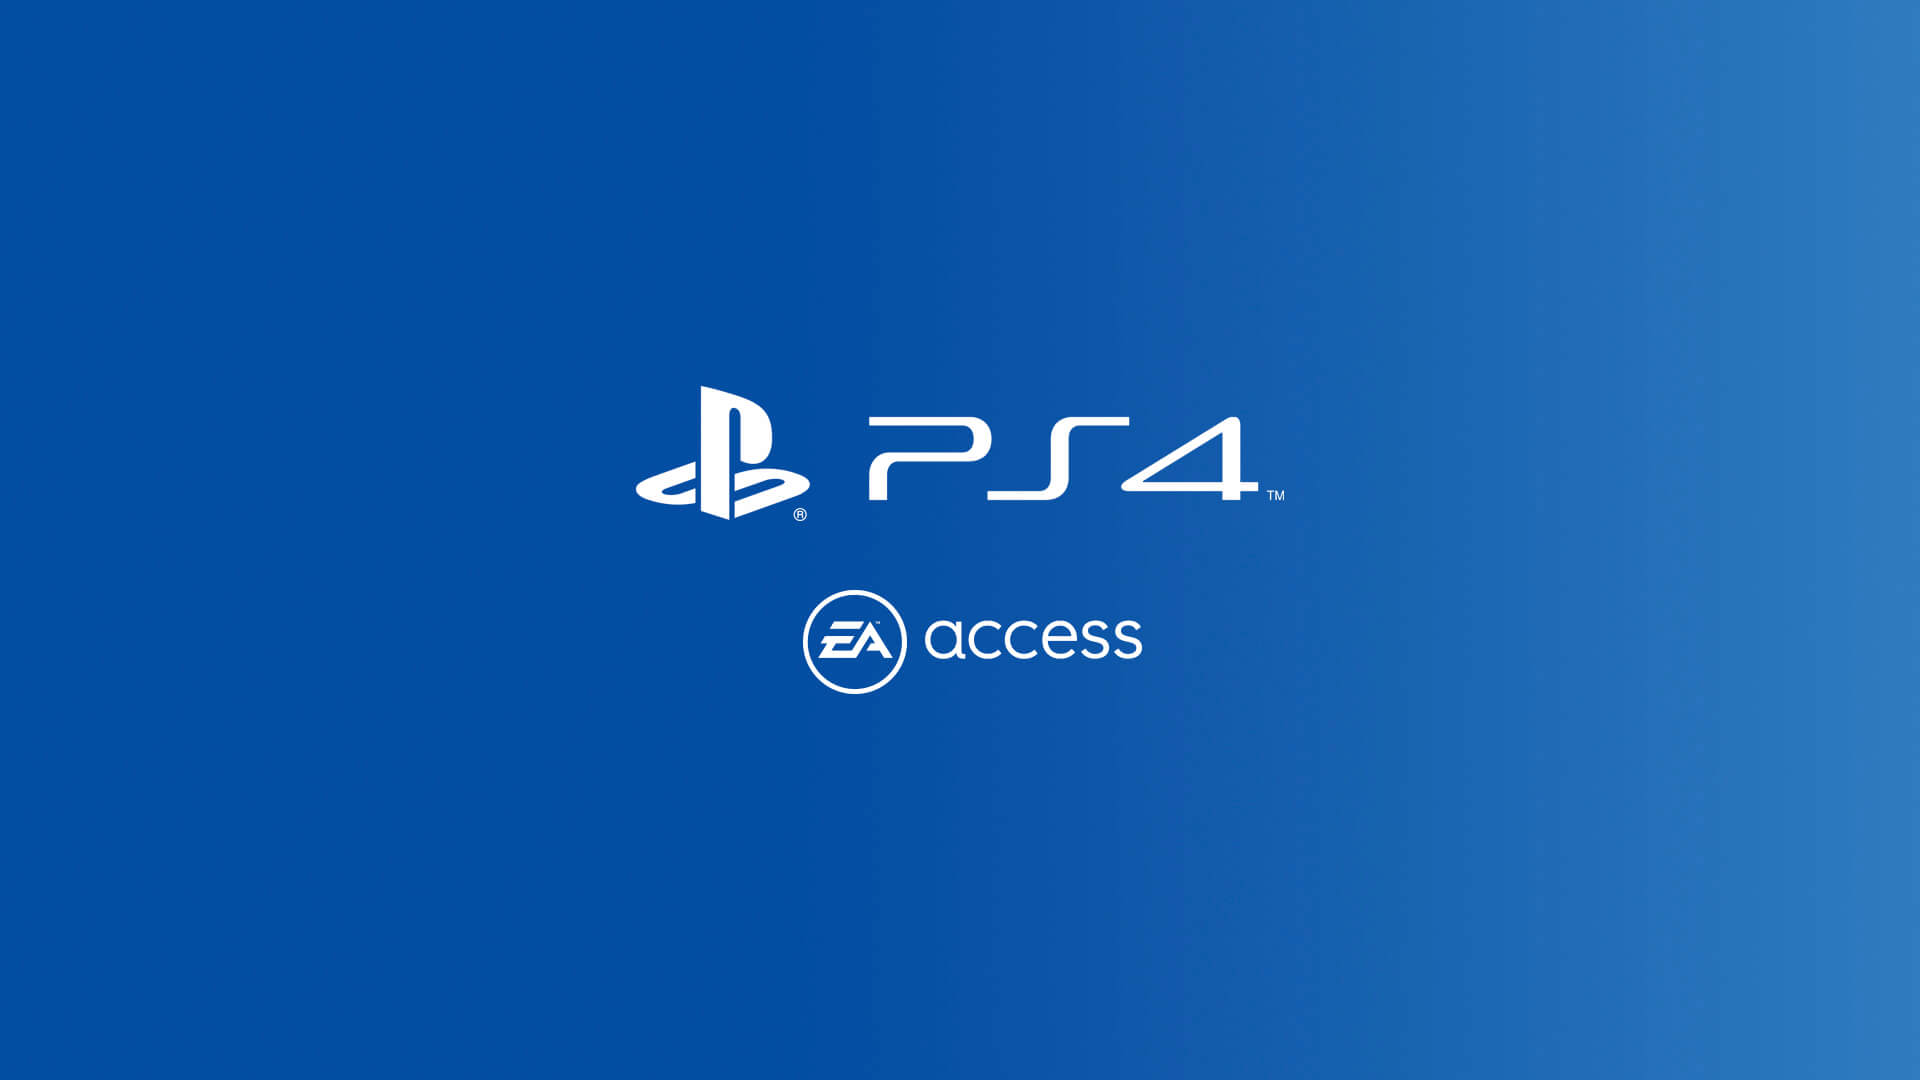 EA Access ya está disponible en PlayStation 4